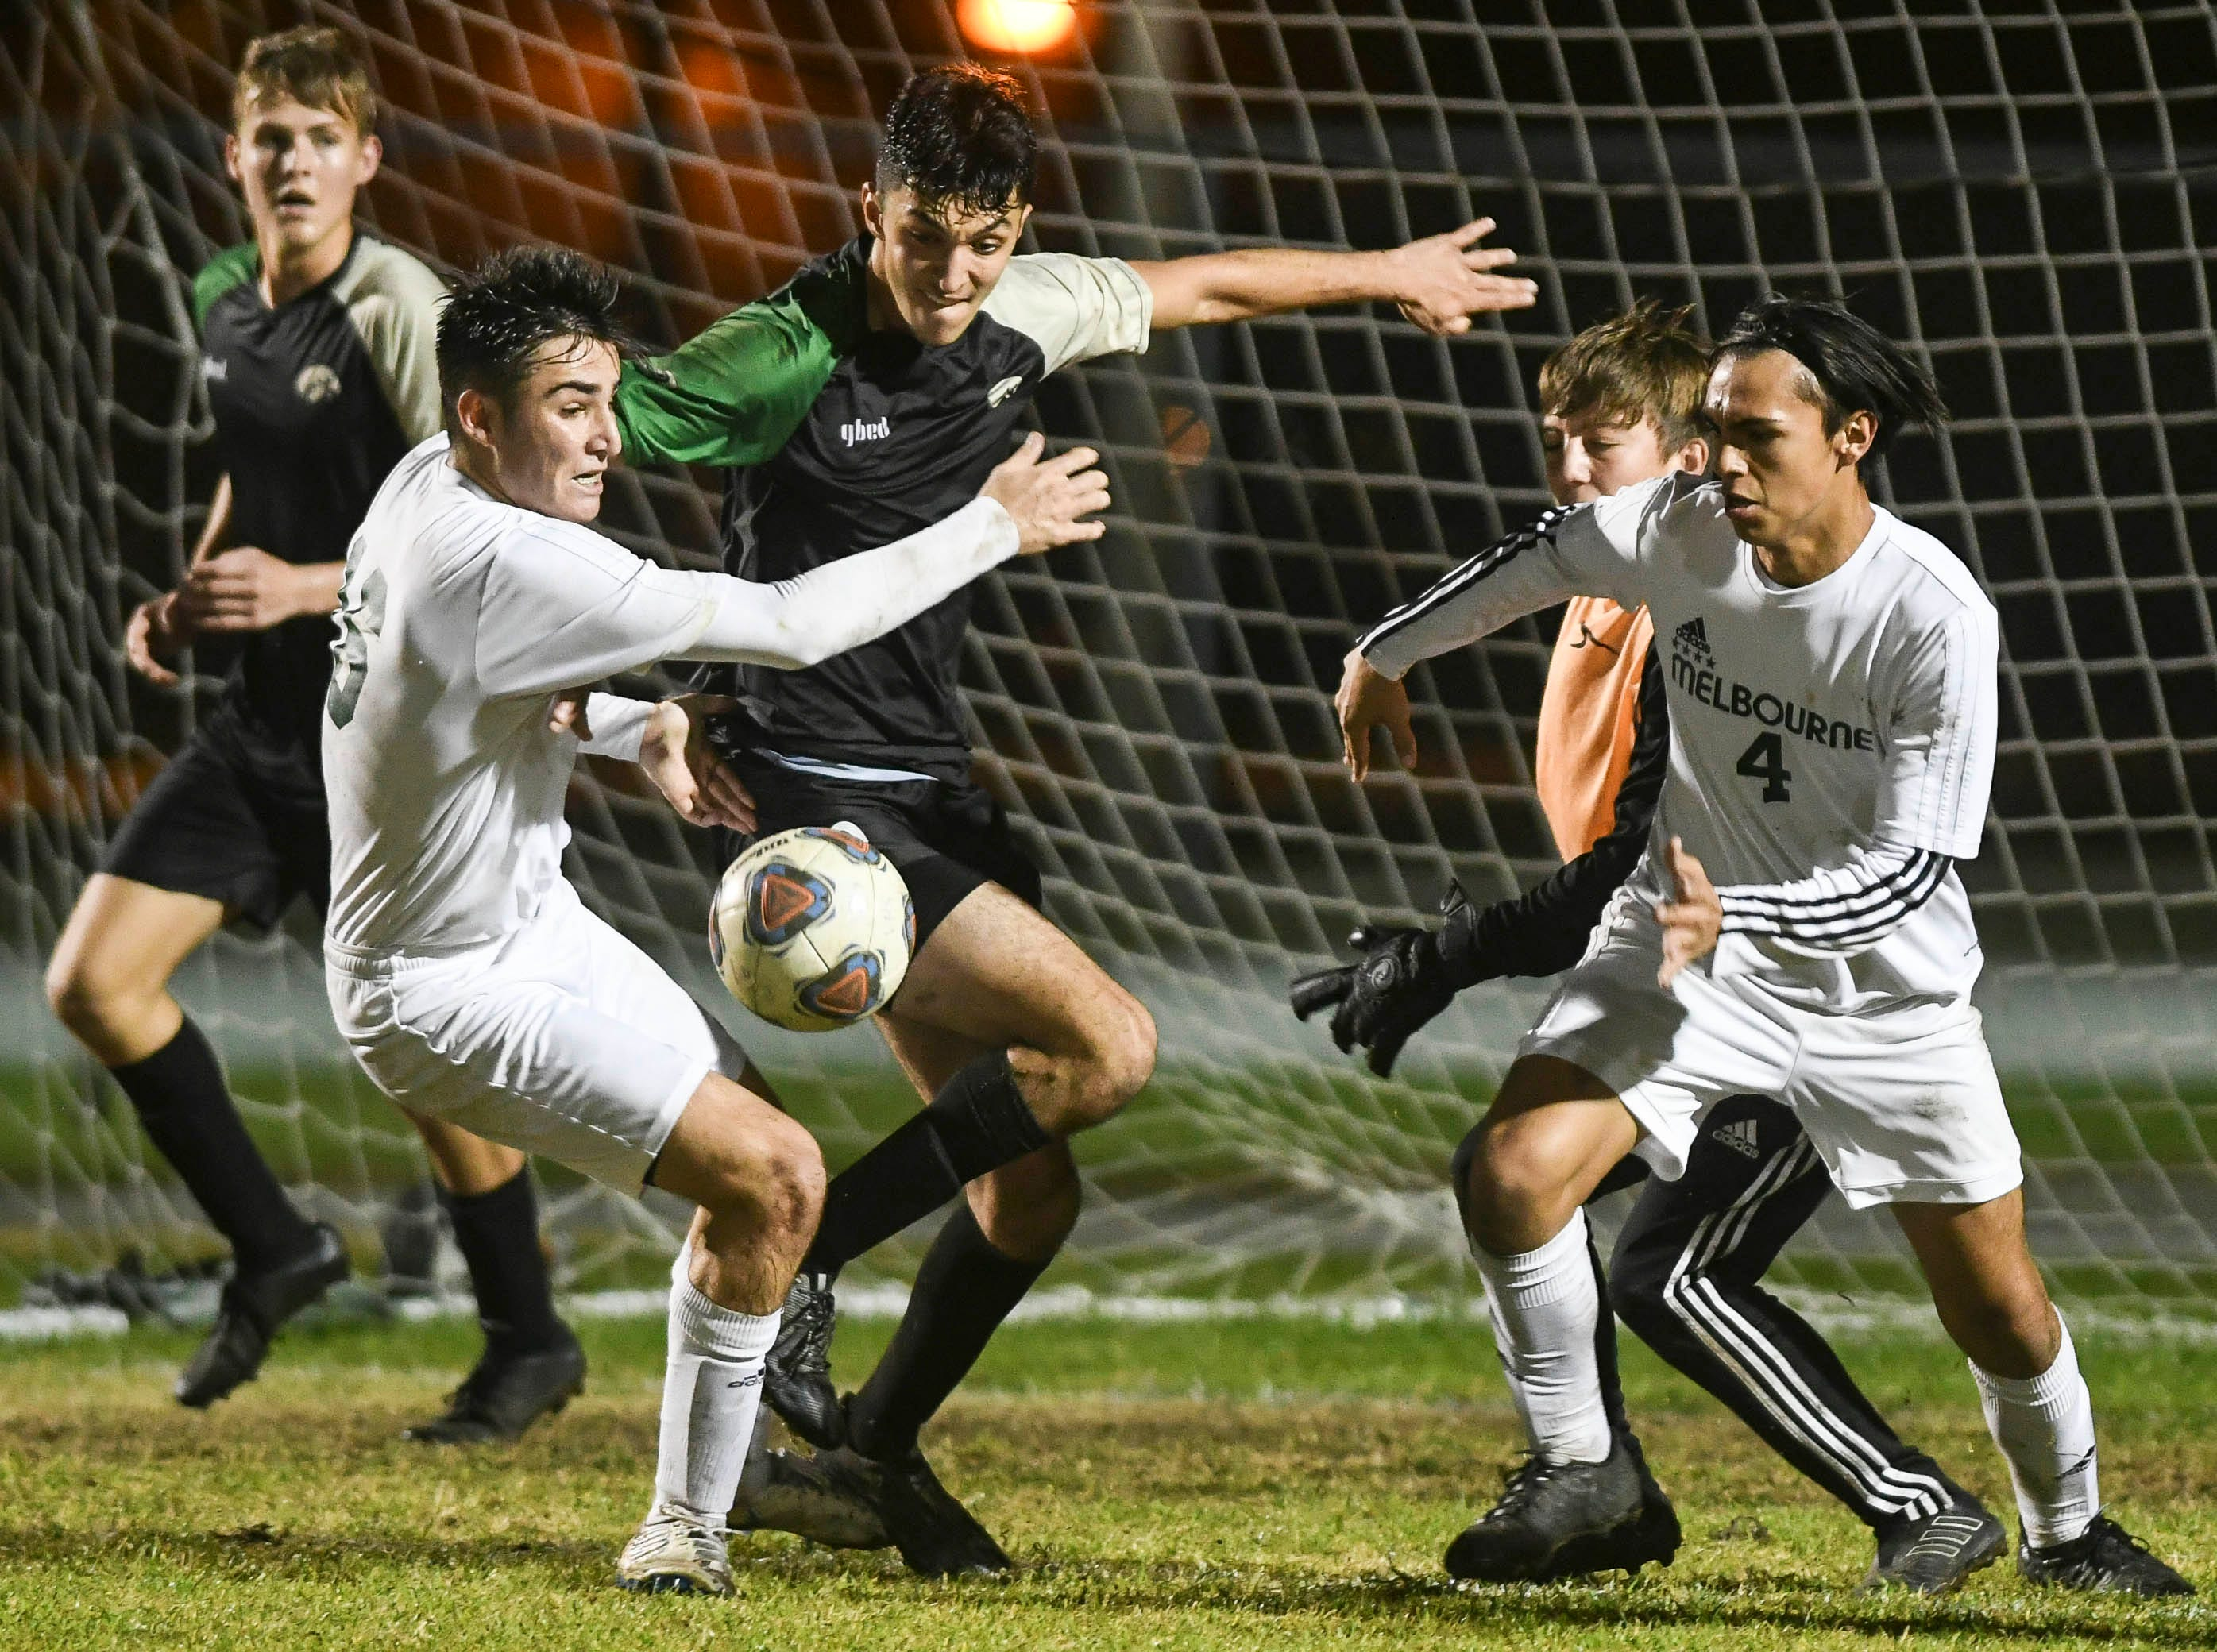 Melbourne and Viera players battle for the ball in front of the Melbourne goal during Friday's game.